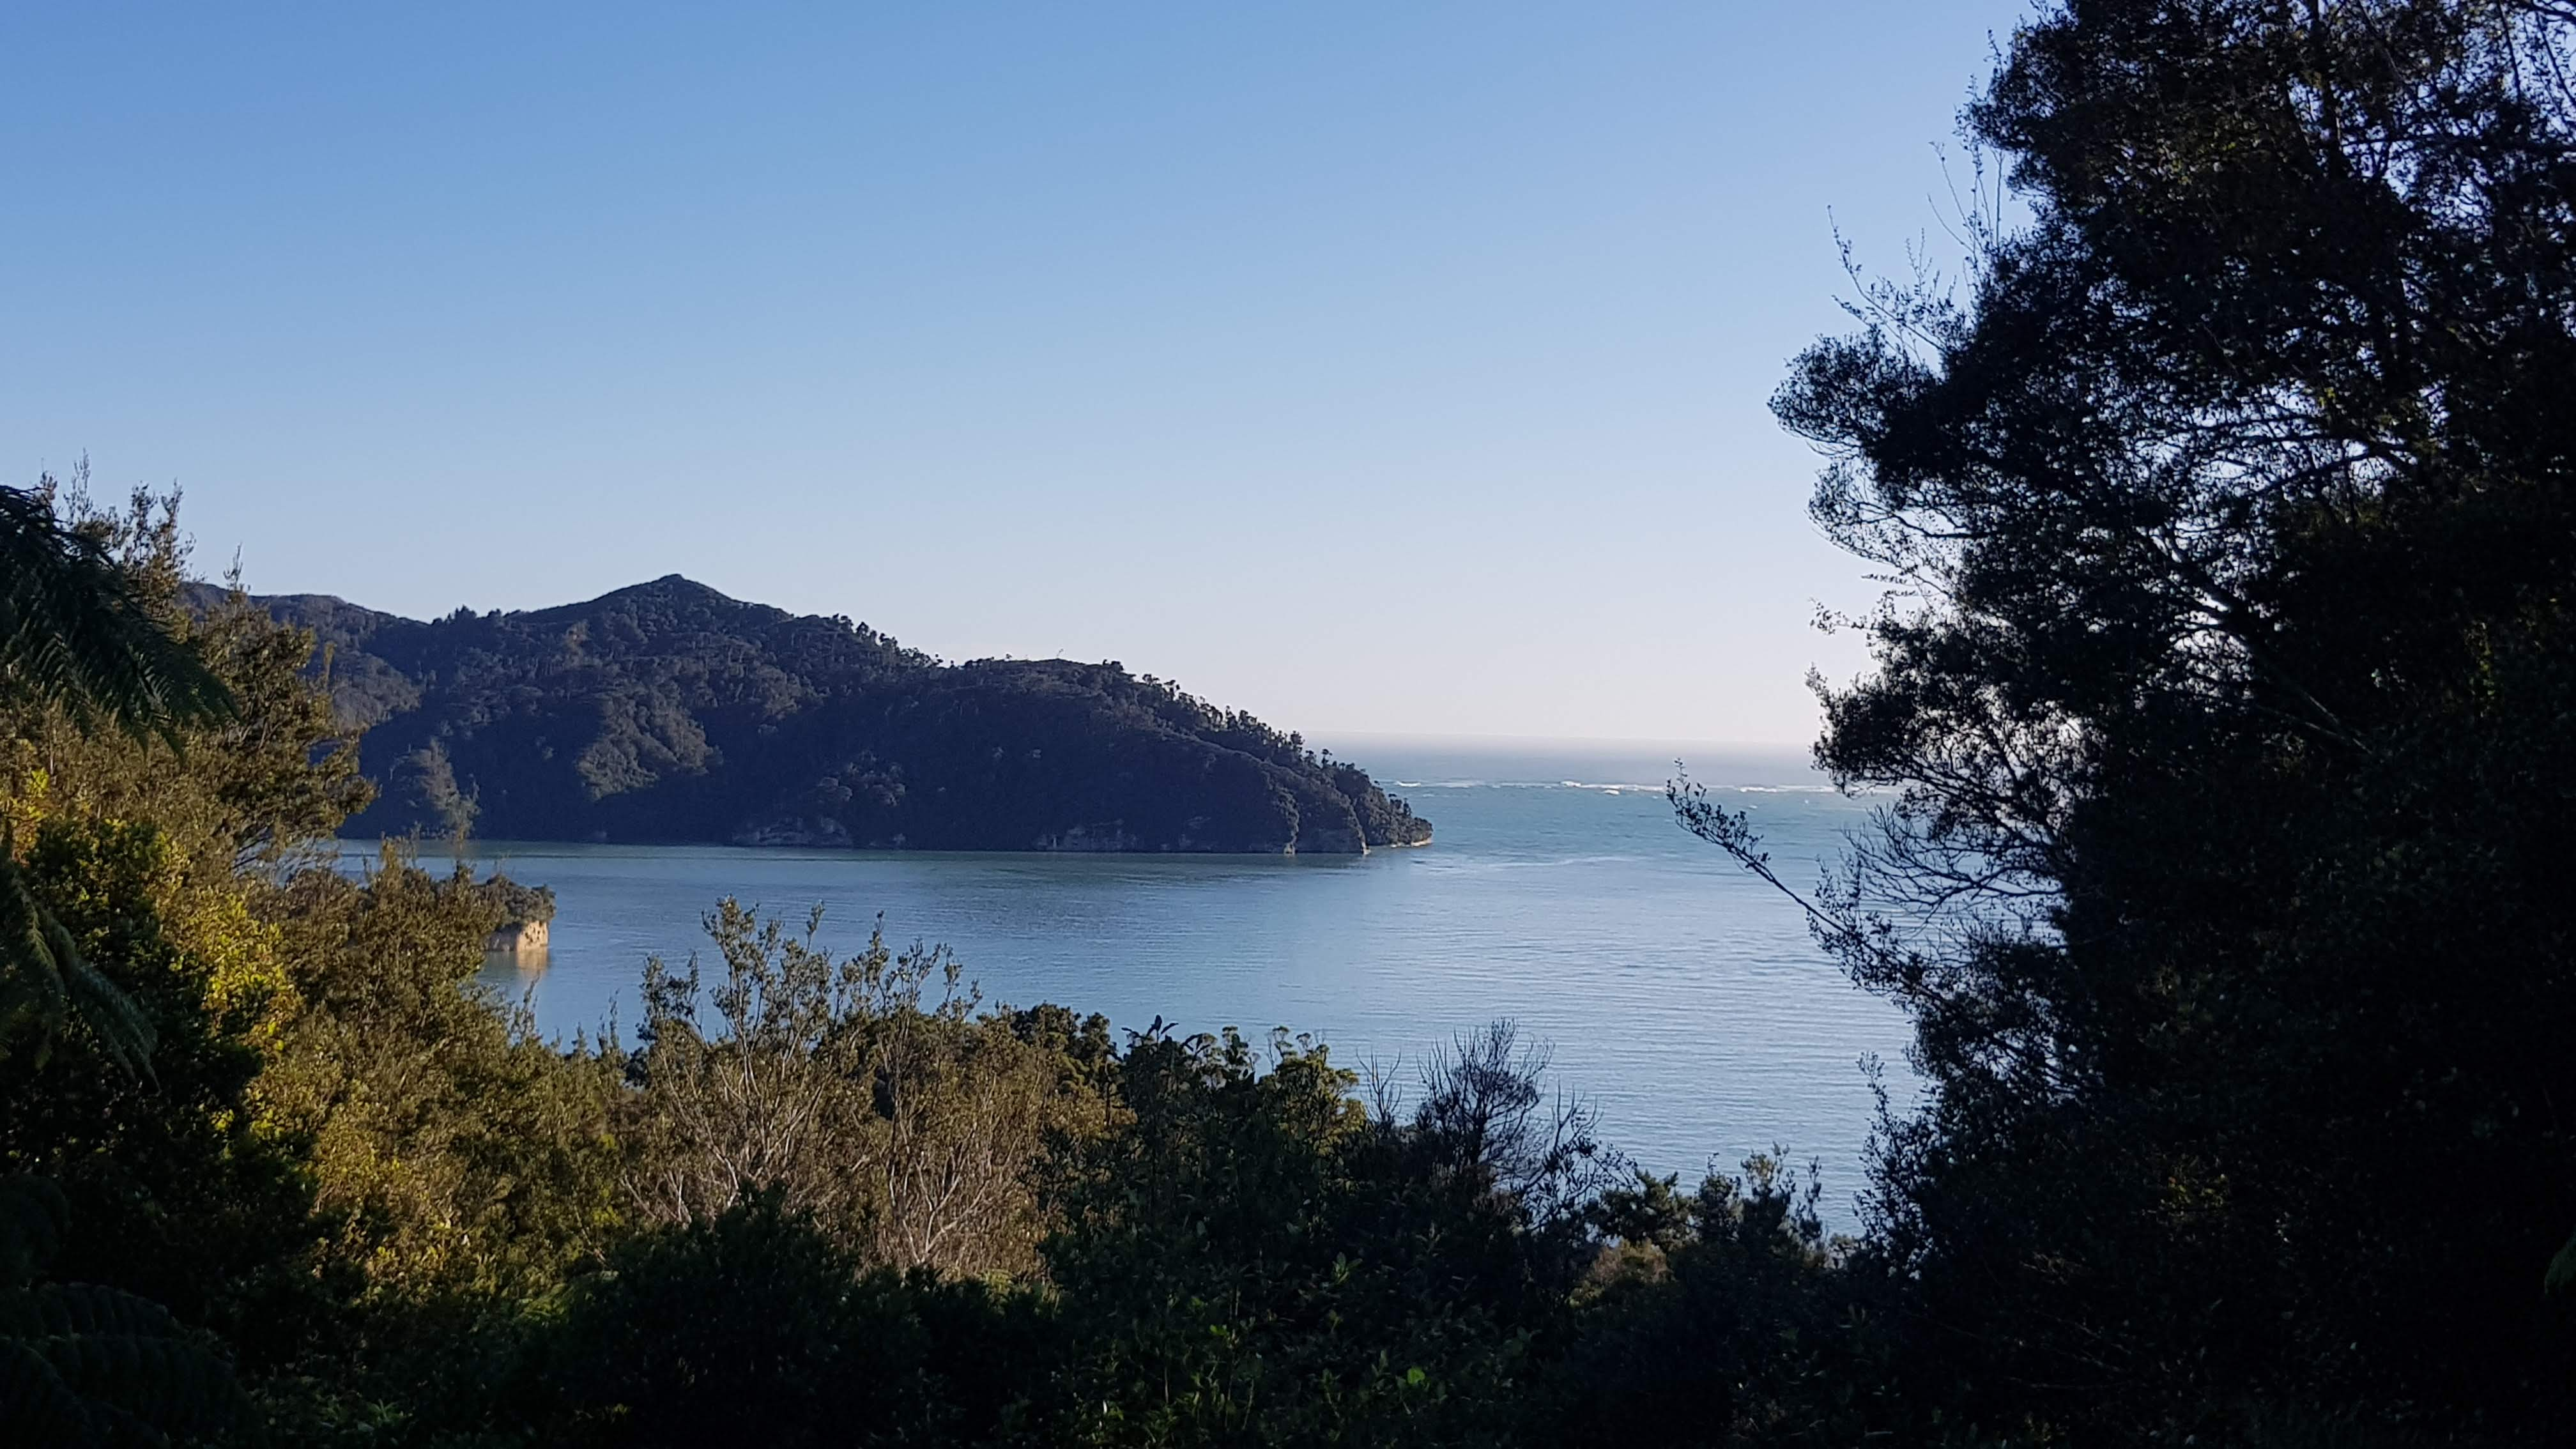 First glimpse of the Whanhganui inlet